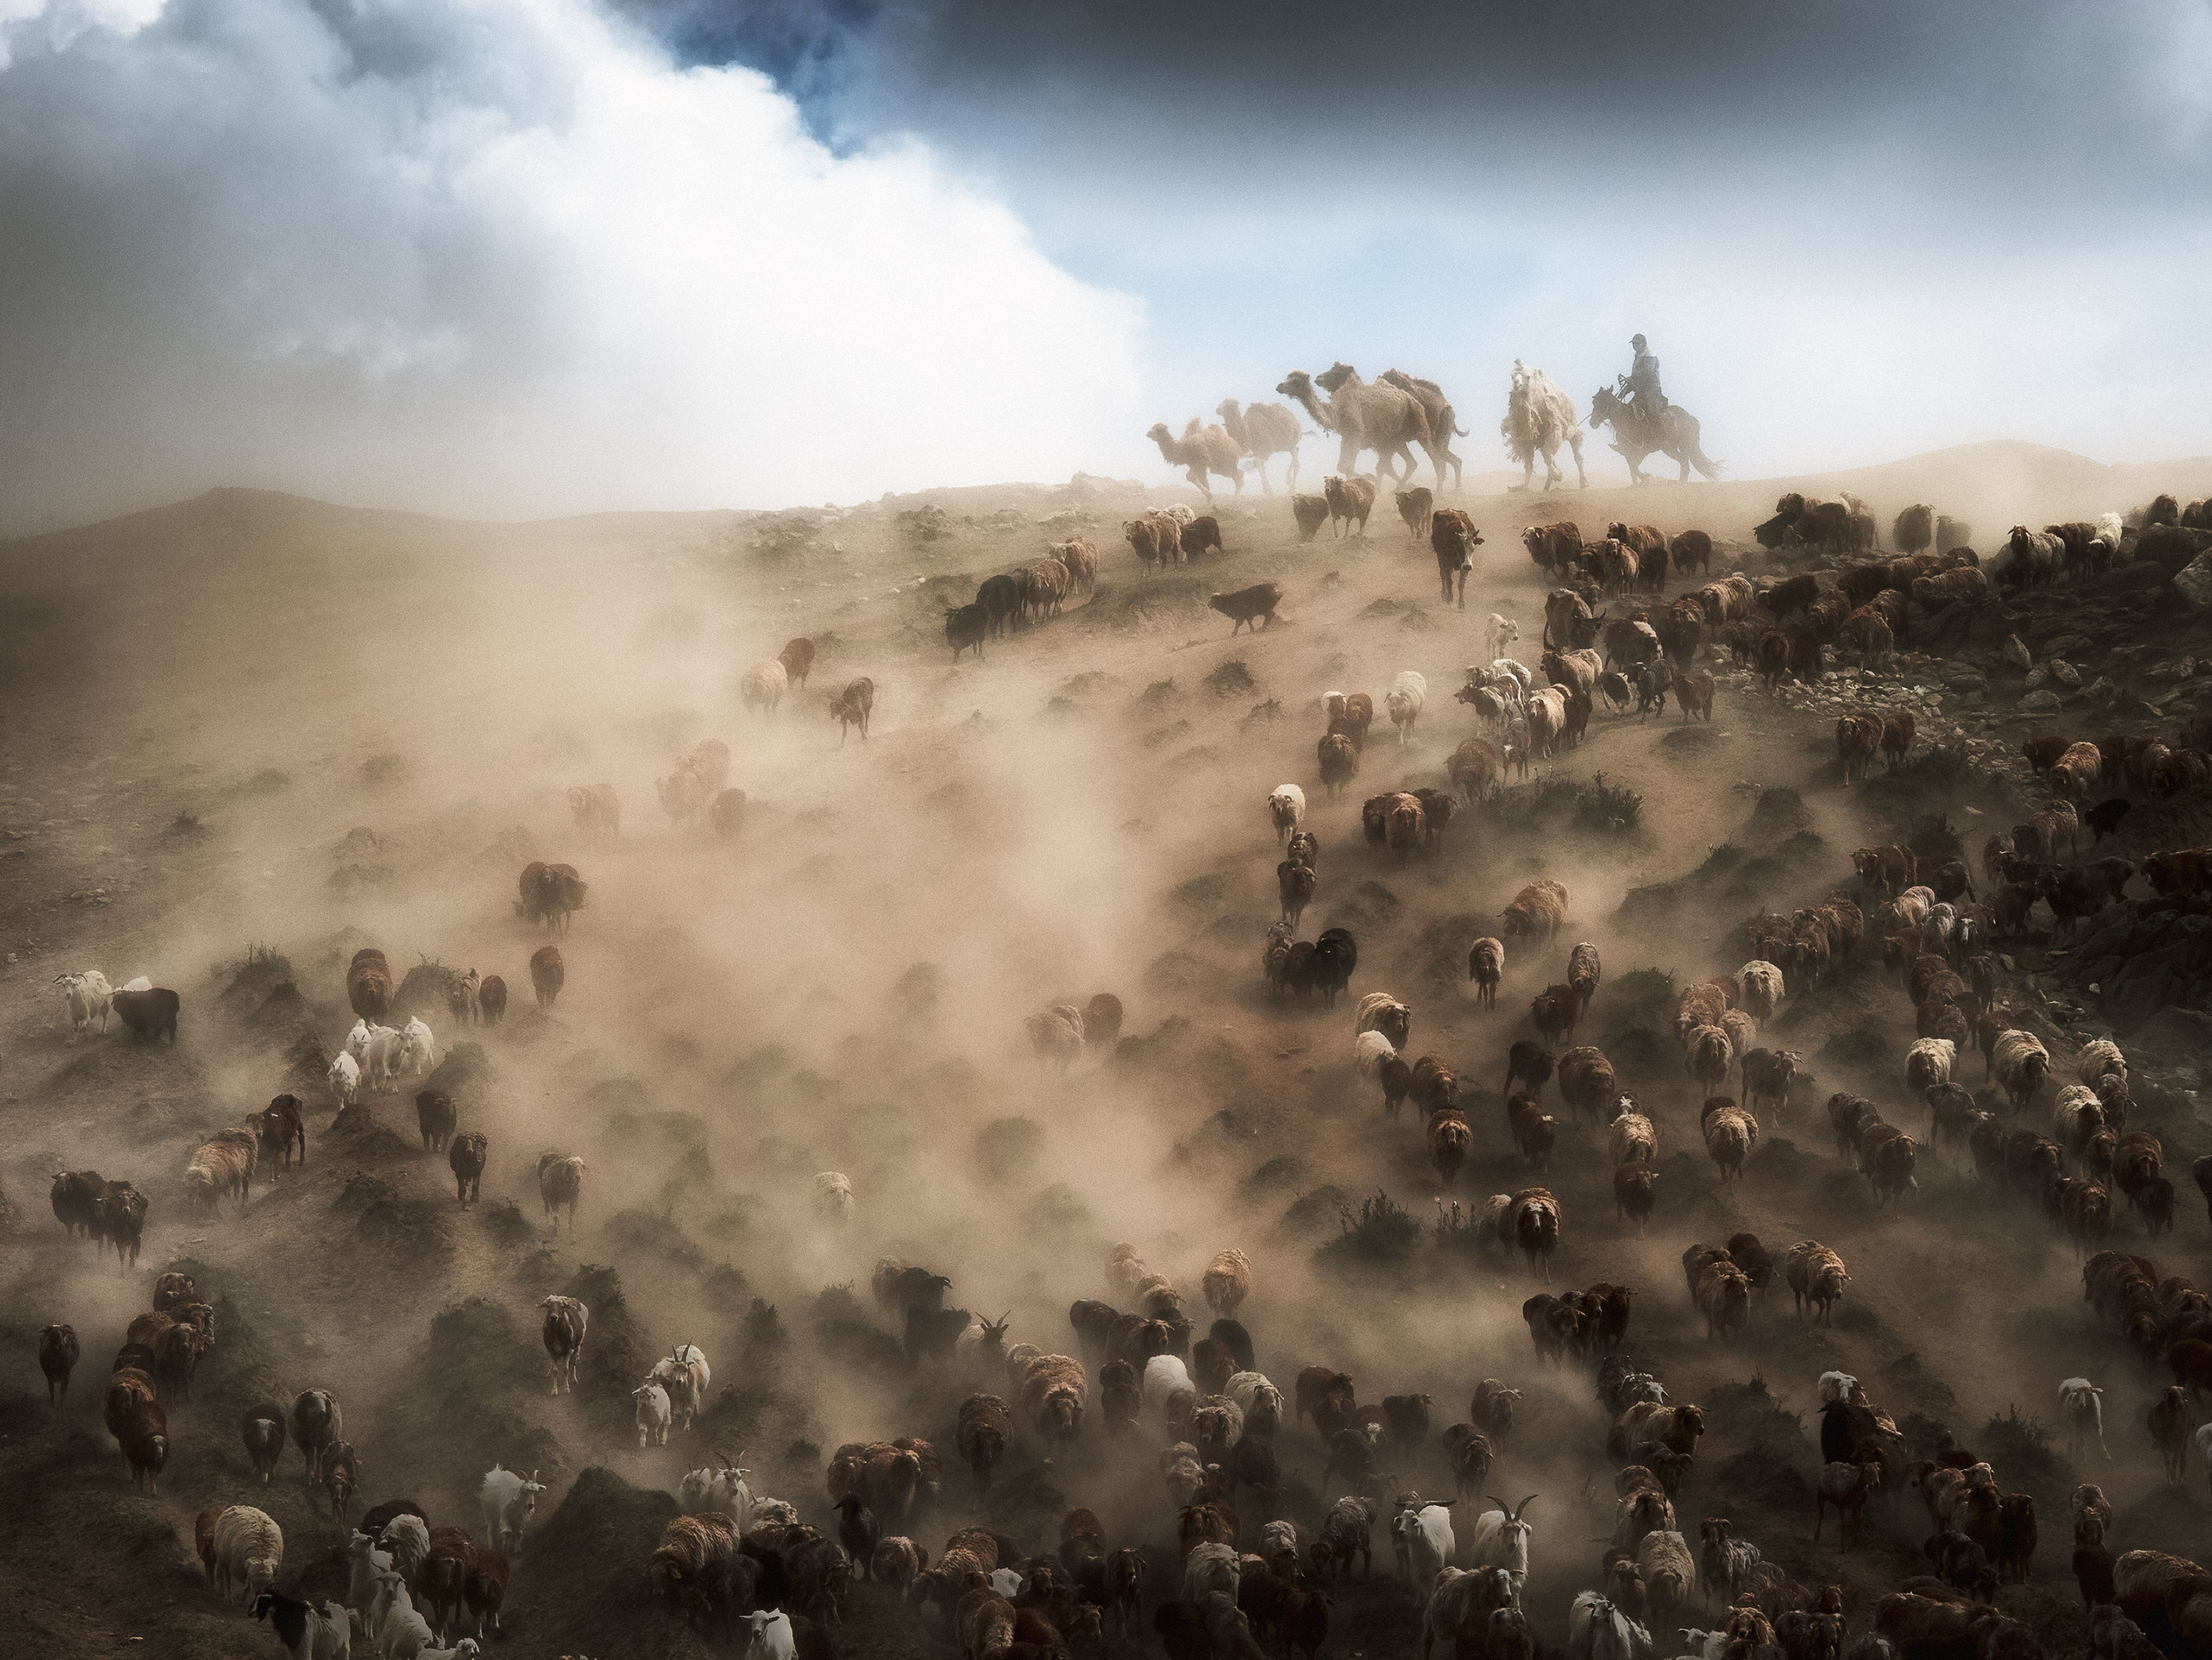 In far northern Xinjiang, China, herders guide camels, sheep, and cattle to new pastures, where they'll graze during the summer months. Summer in the area is warm, but very dry.